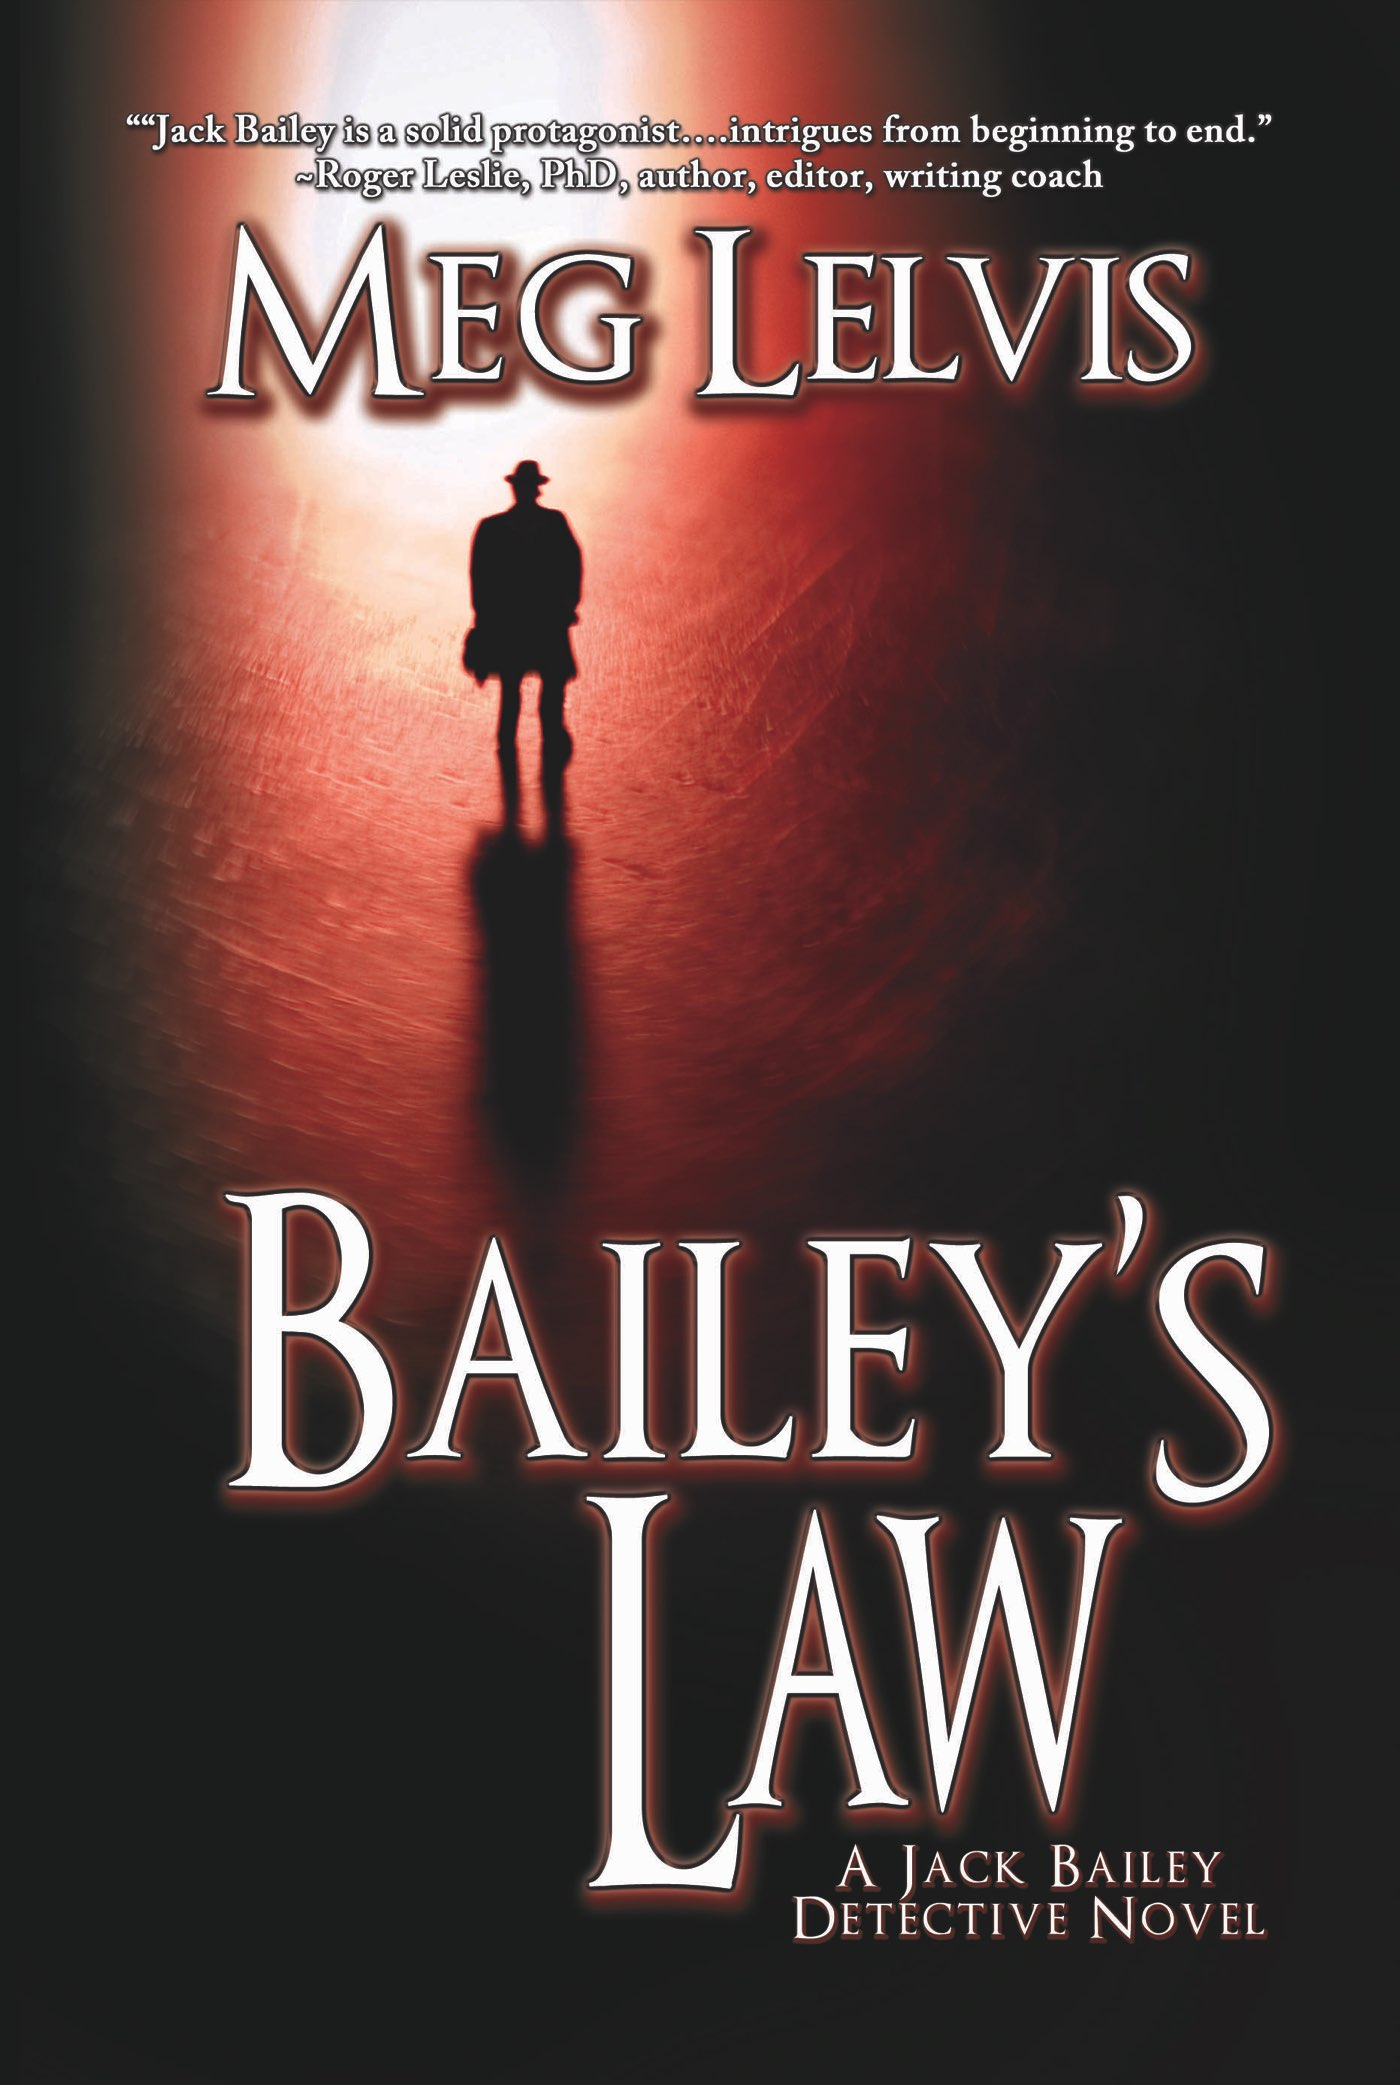 Bailey's Law by Meg Lelvis